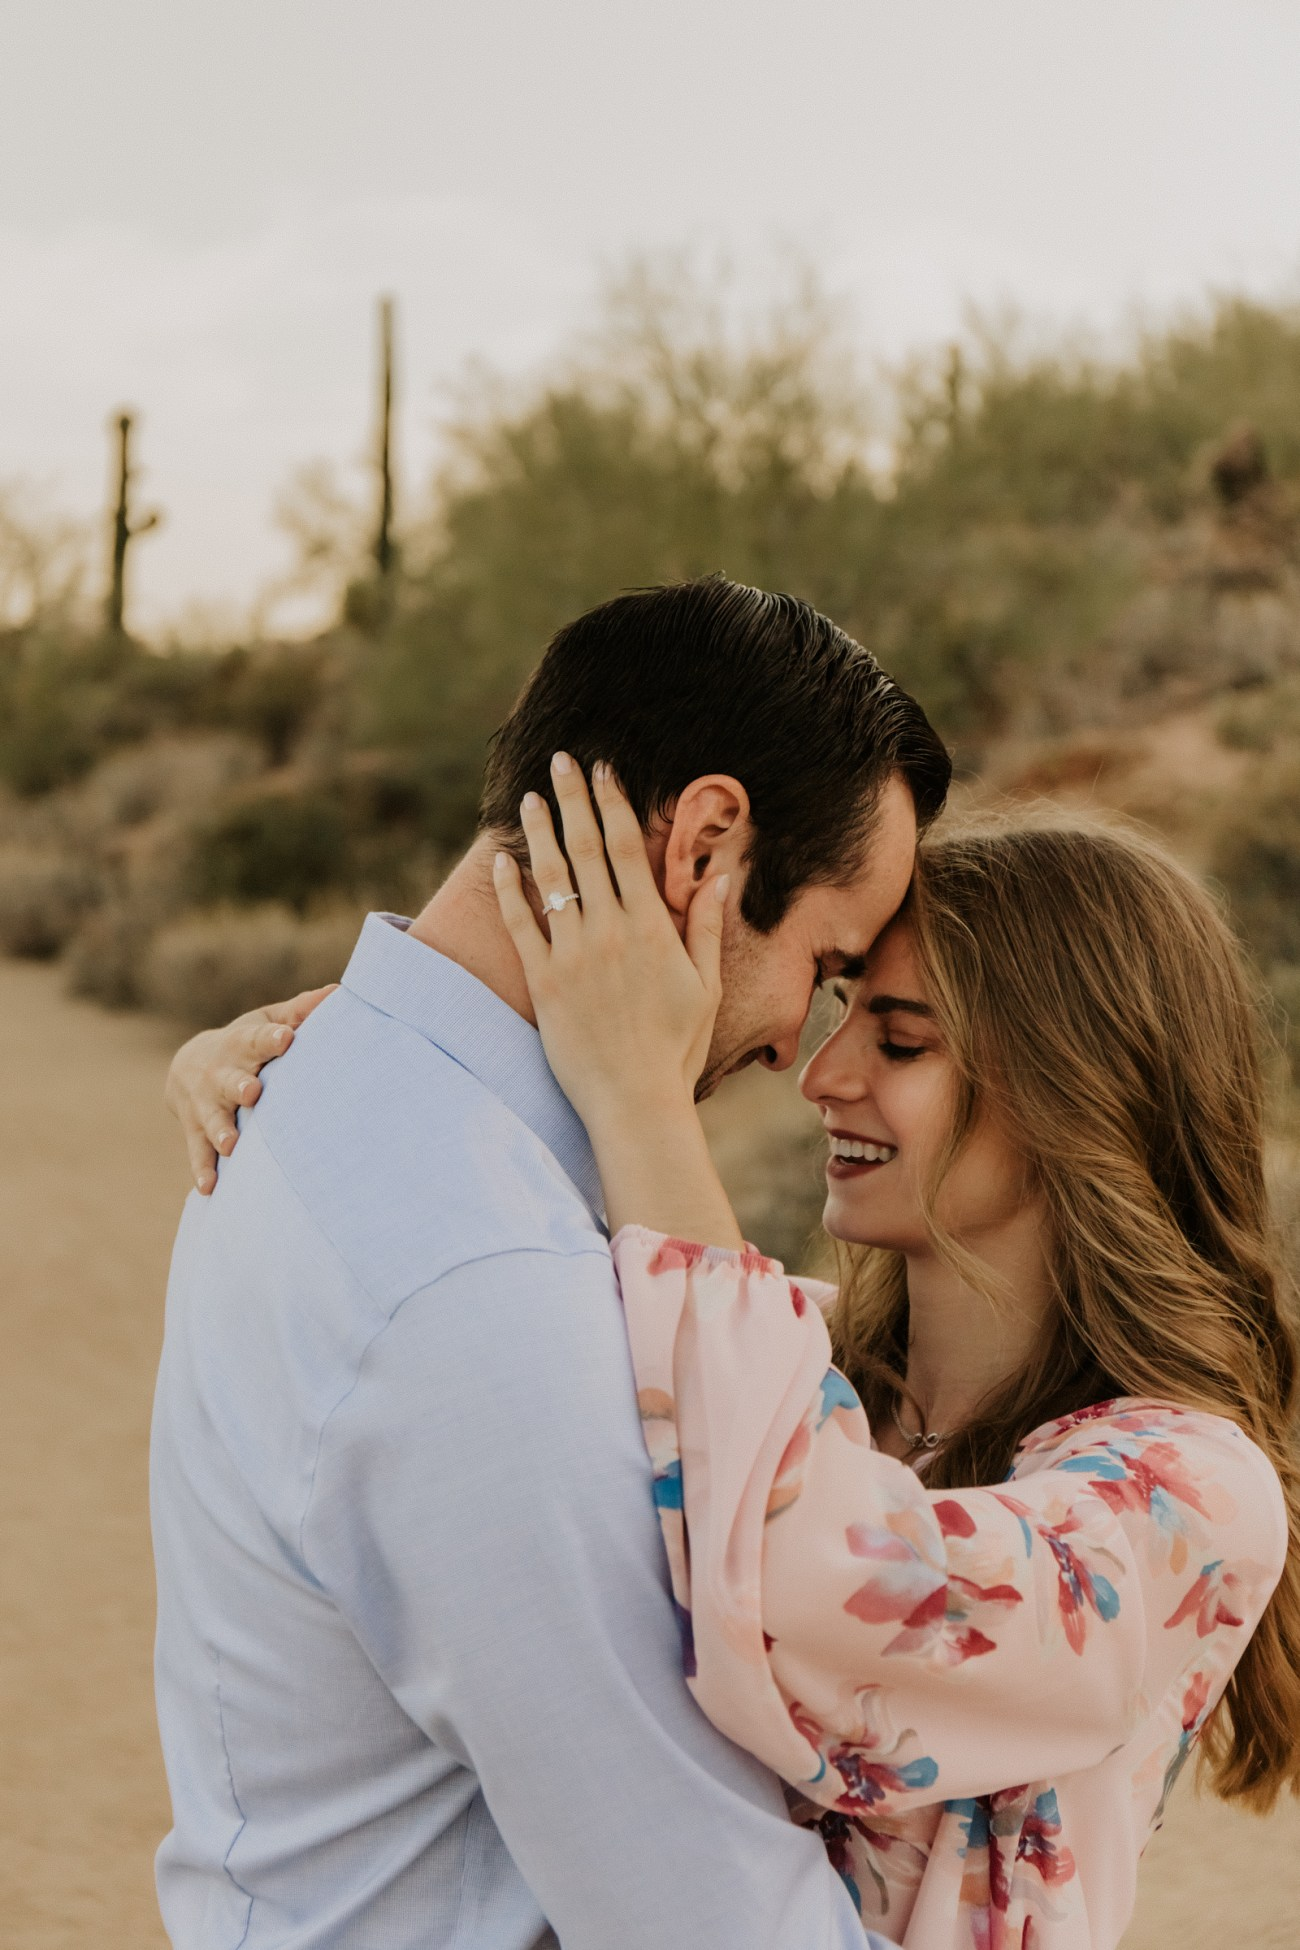 Megan Claire Photography | Arizona Wedding Photographer. Desert engagement portrait photoshoot. @meganclairephoto